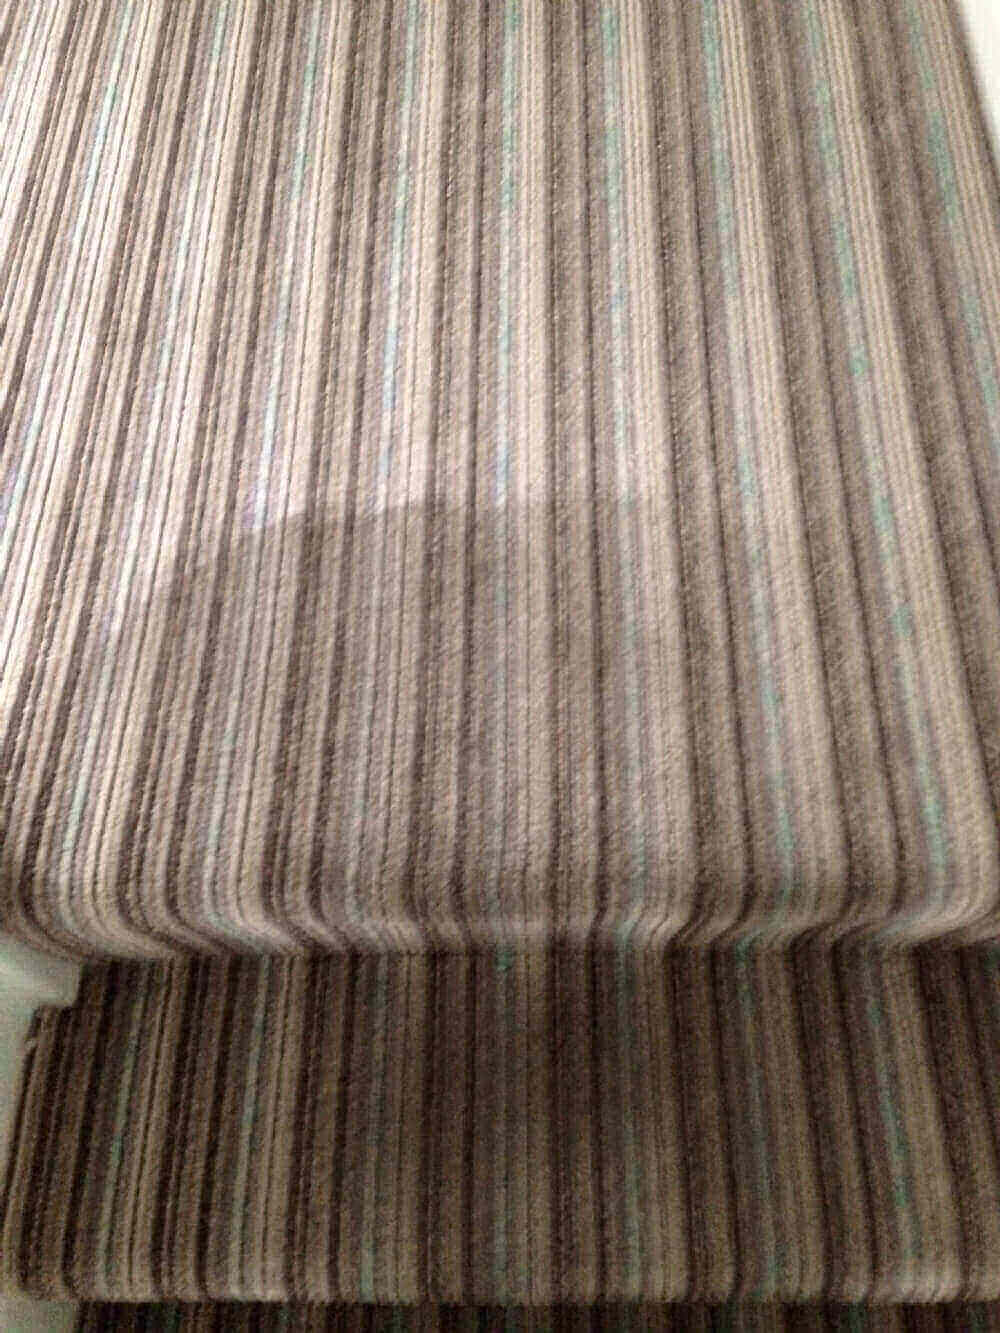 rug cleaning Leamington Spa